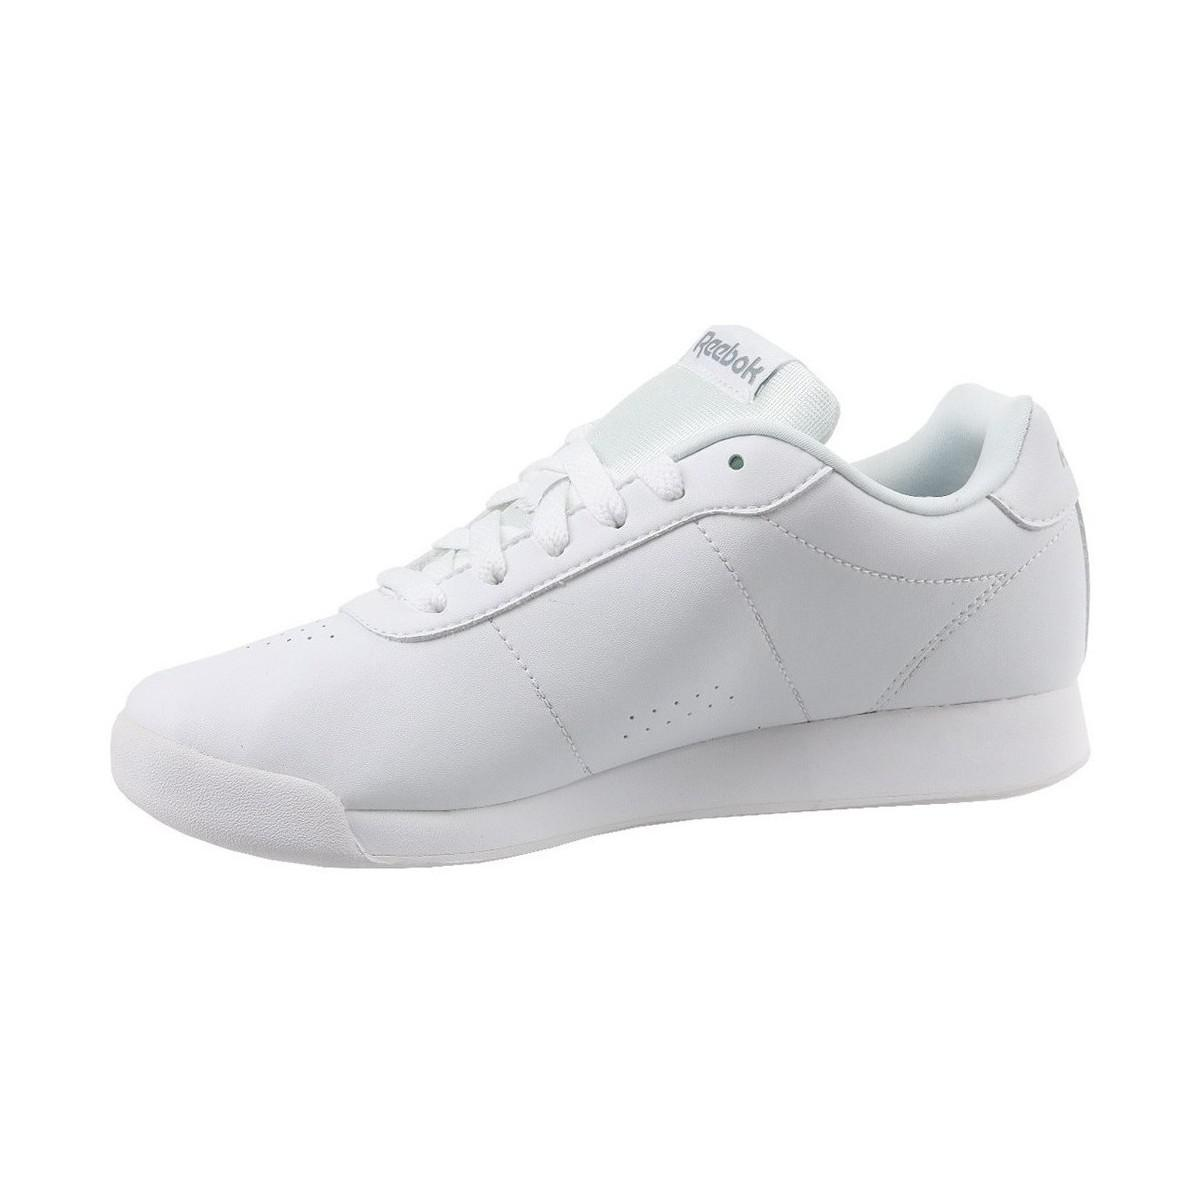 cc7bd624f23ed9 Reebok Royal Charm Women s Shoes (trainers) In White in White - Lyst